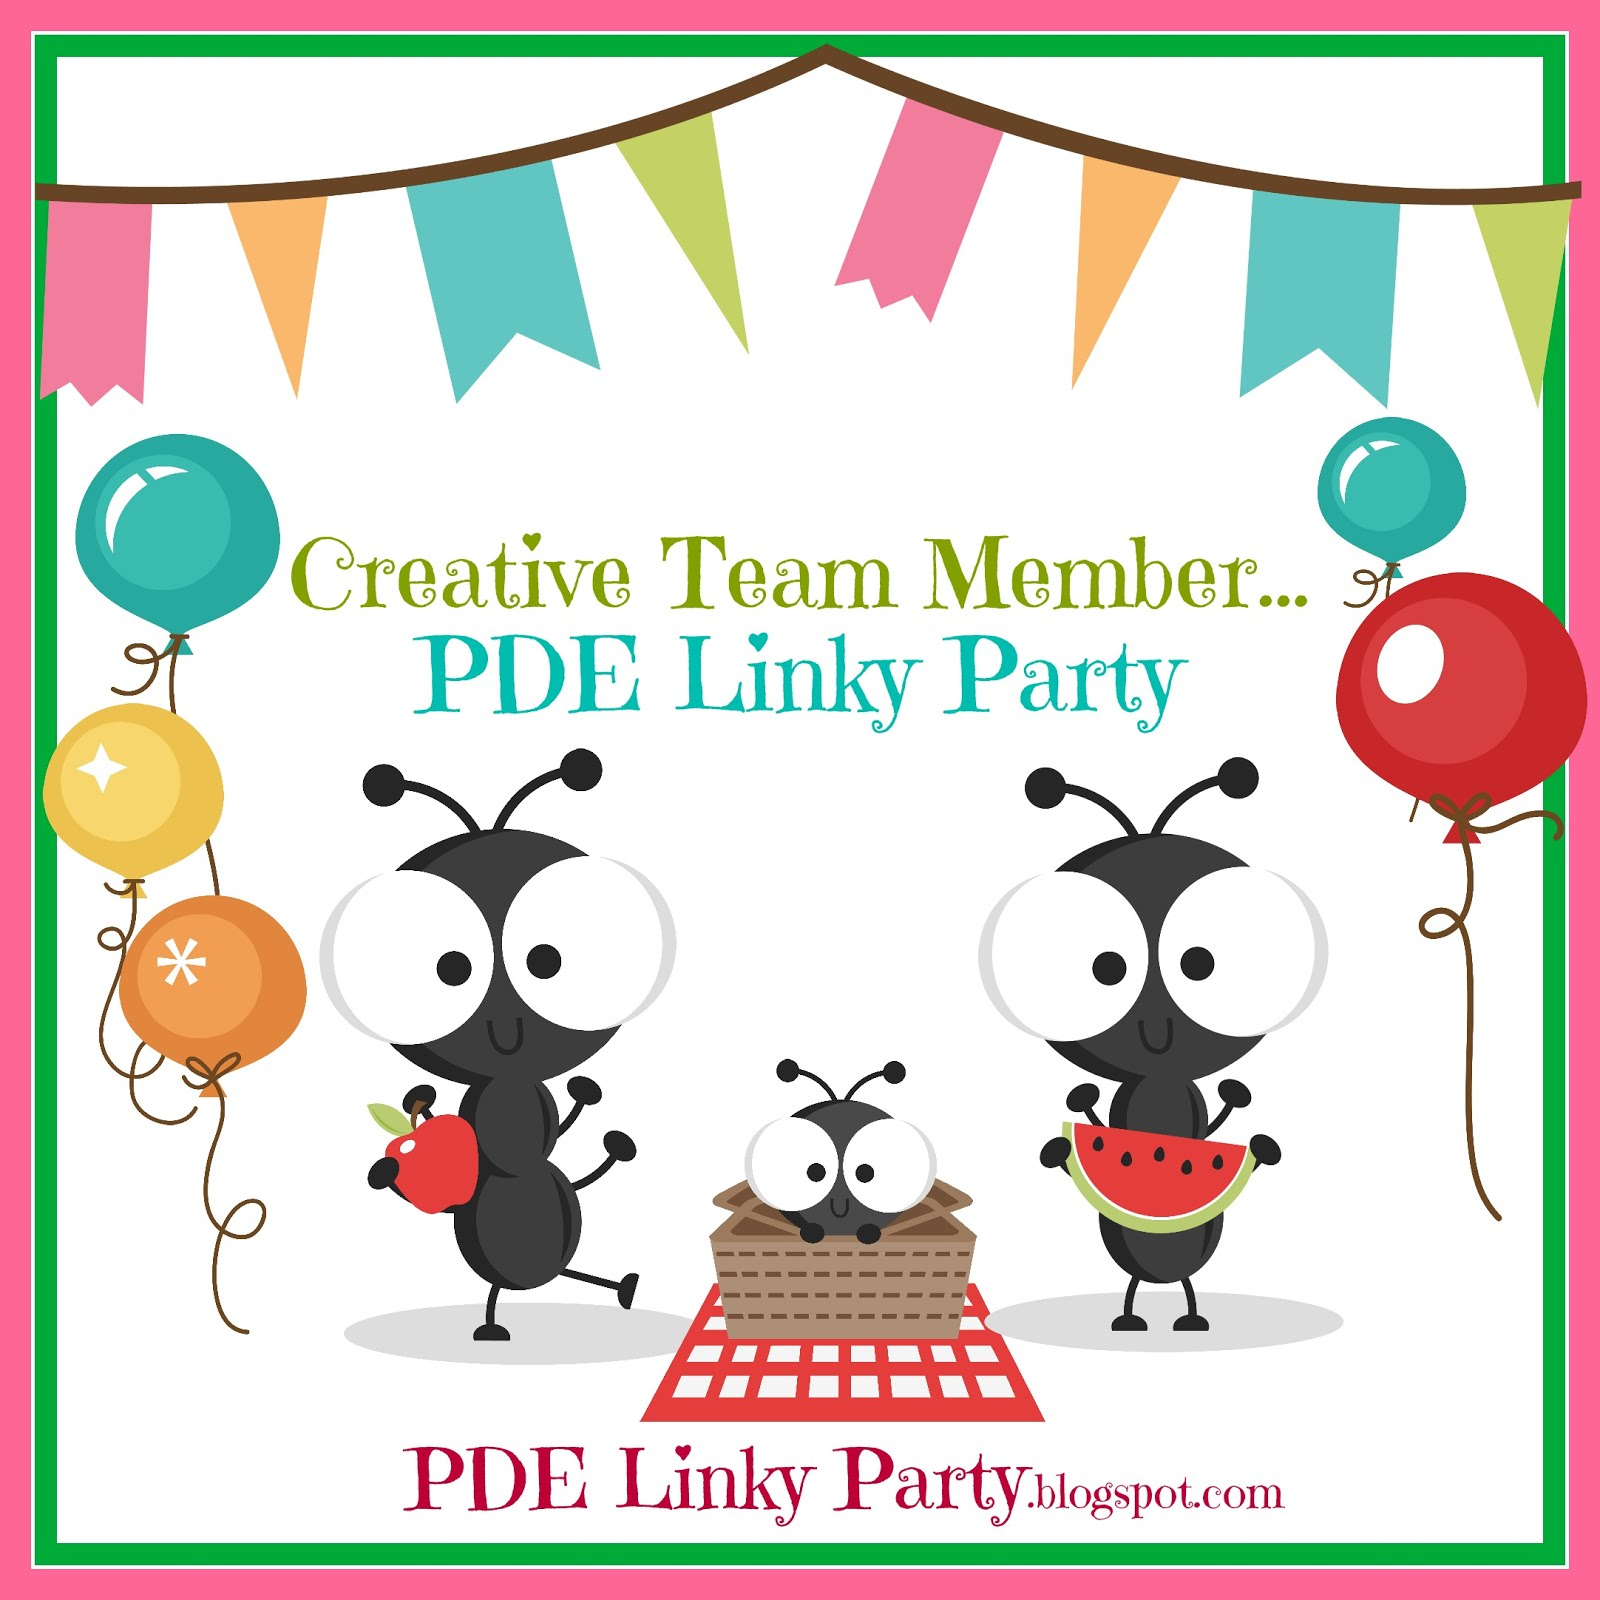 I Design For...PDE Linky Party